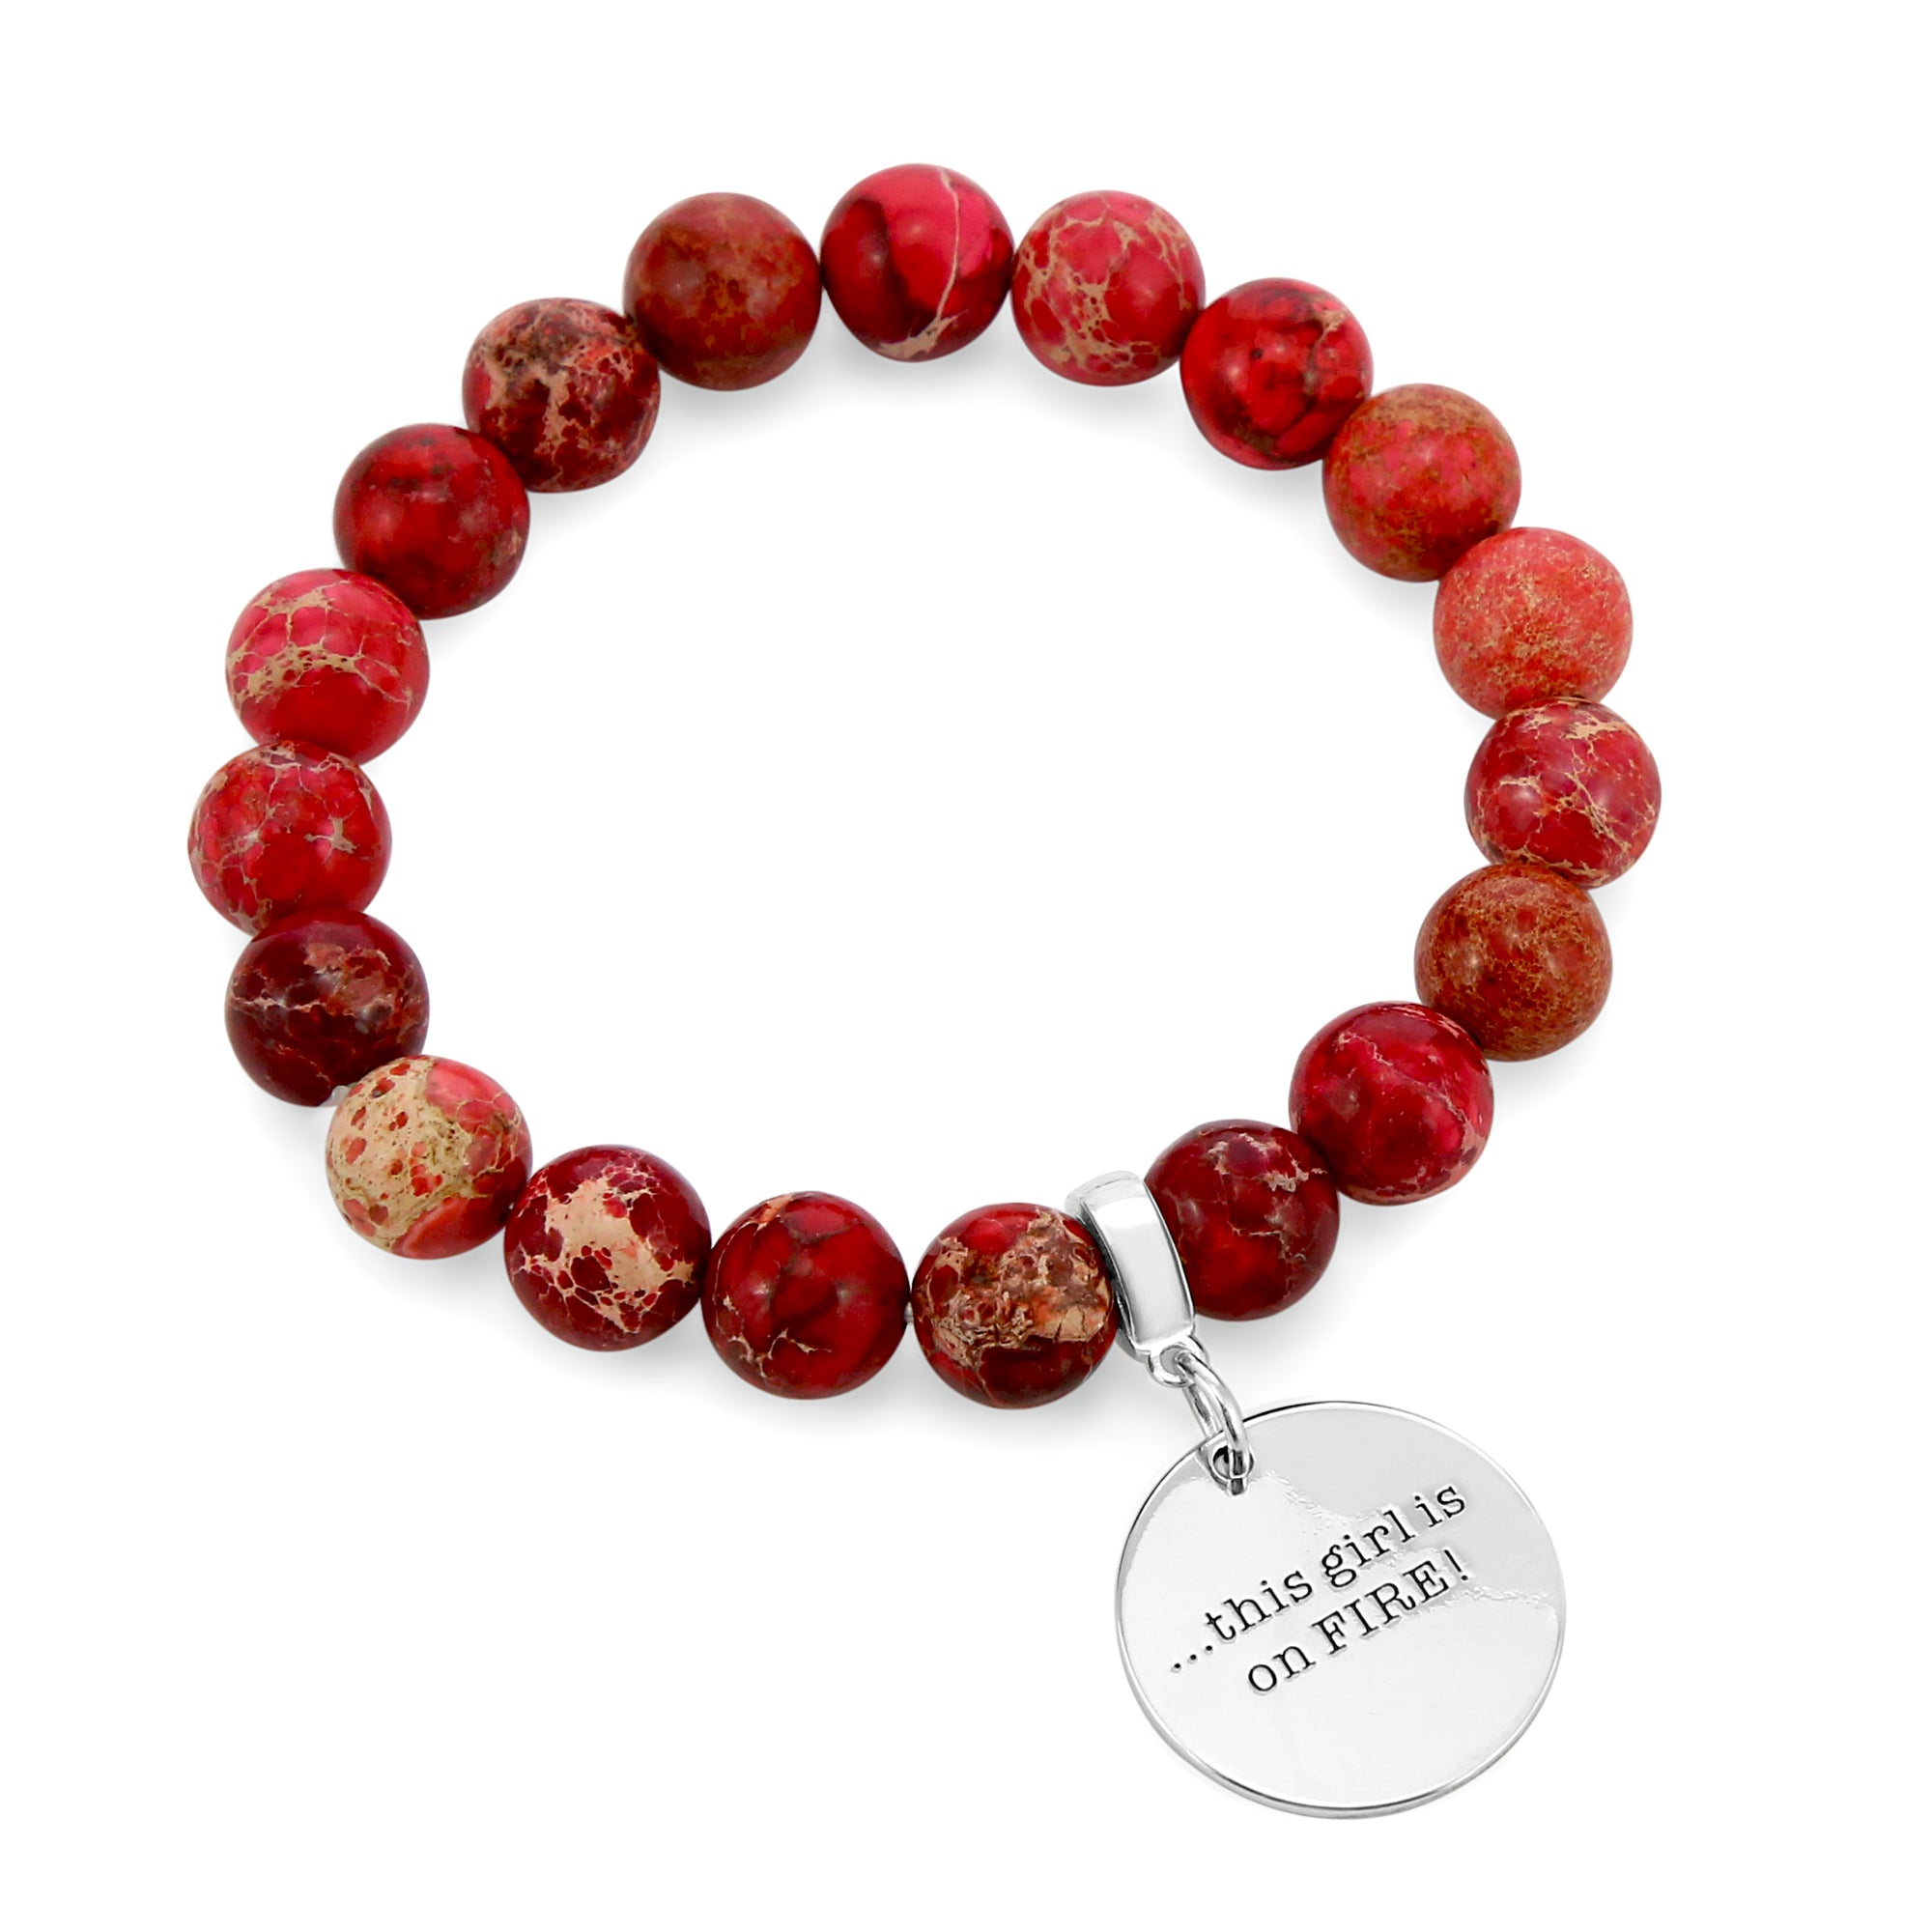 Precious Stone Bracelet ' THIS GIRL IS ON FIRE ' Imperial Jasper 10MM BEADS - Cardinal Red (11551)